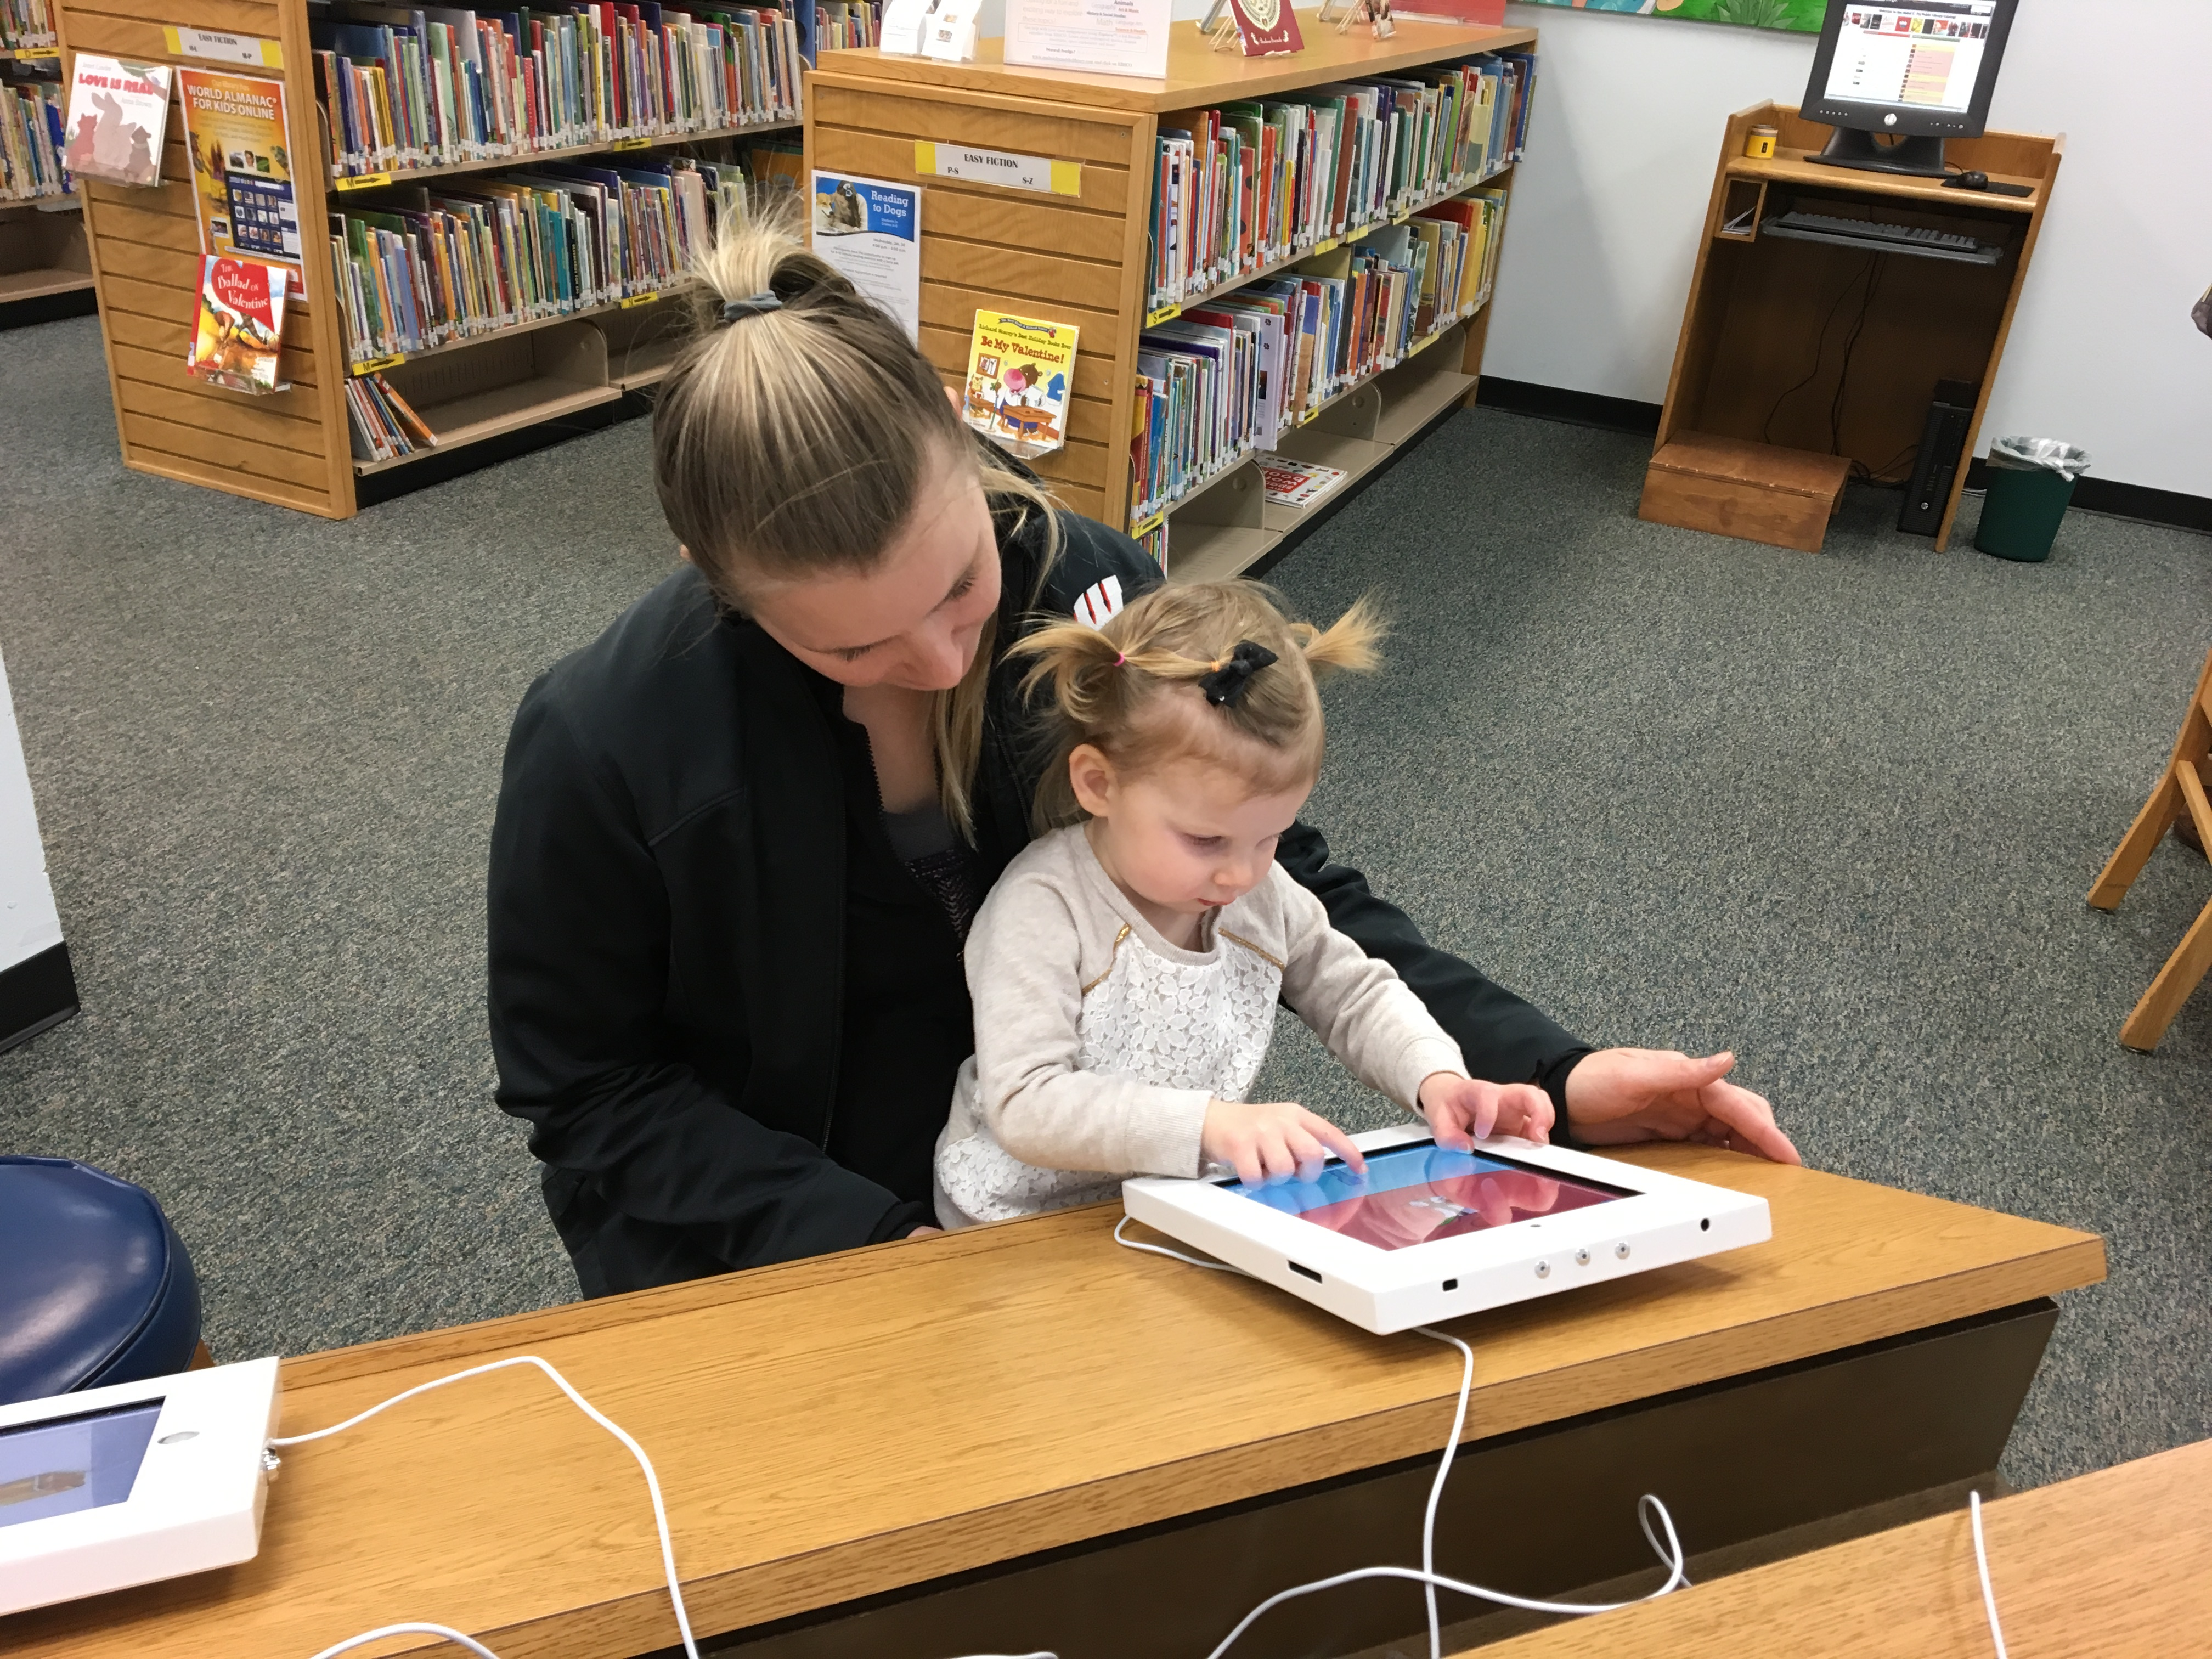 Technology Grant Brings iPads for Children to Yukon Library